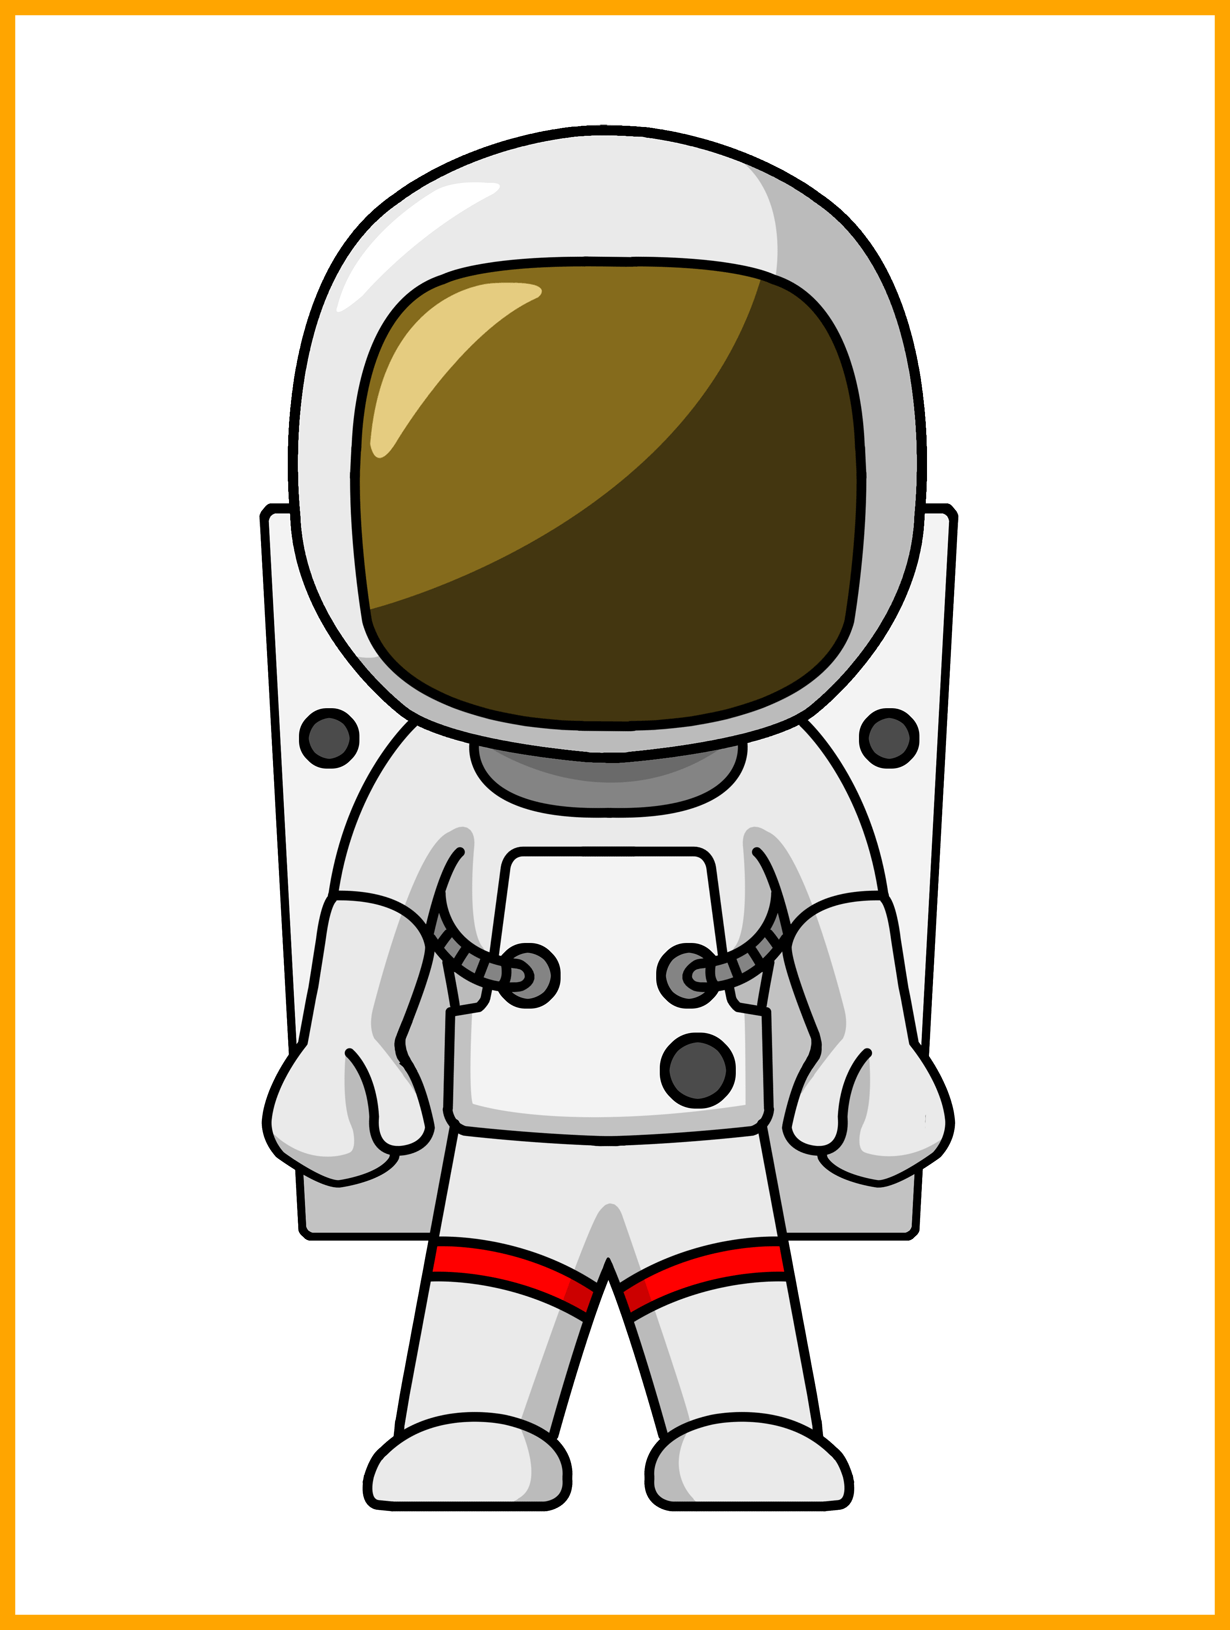 Appealing Astronaut Coloring Pages Etkinliklerim Pic Cartoon Astronaut Clipart Full Size Clipart 312055 Pinclipart